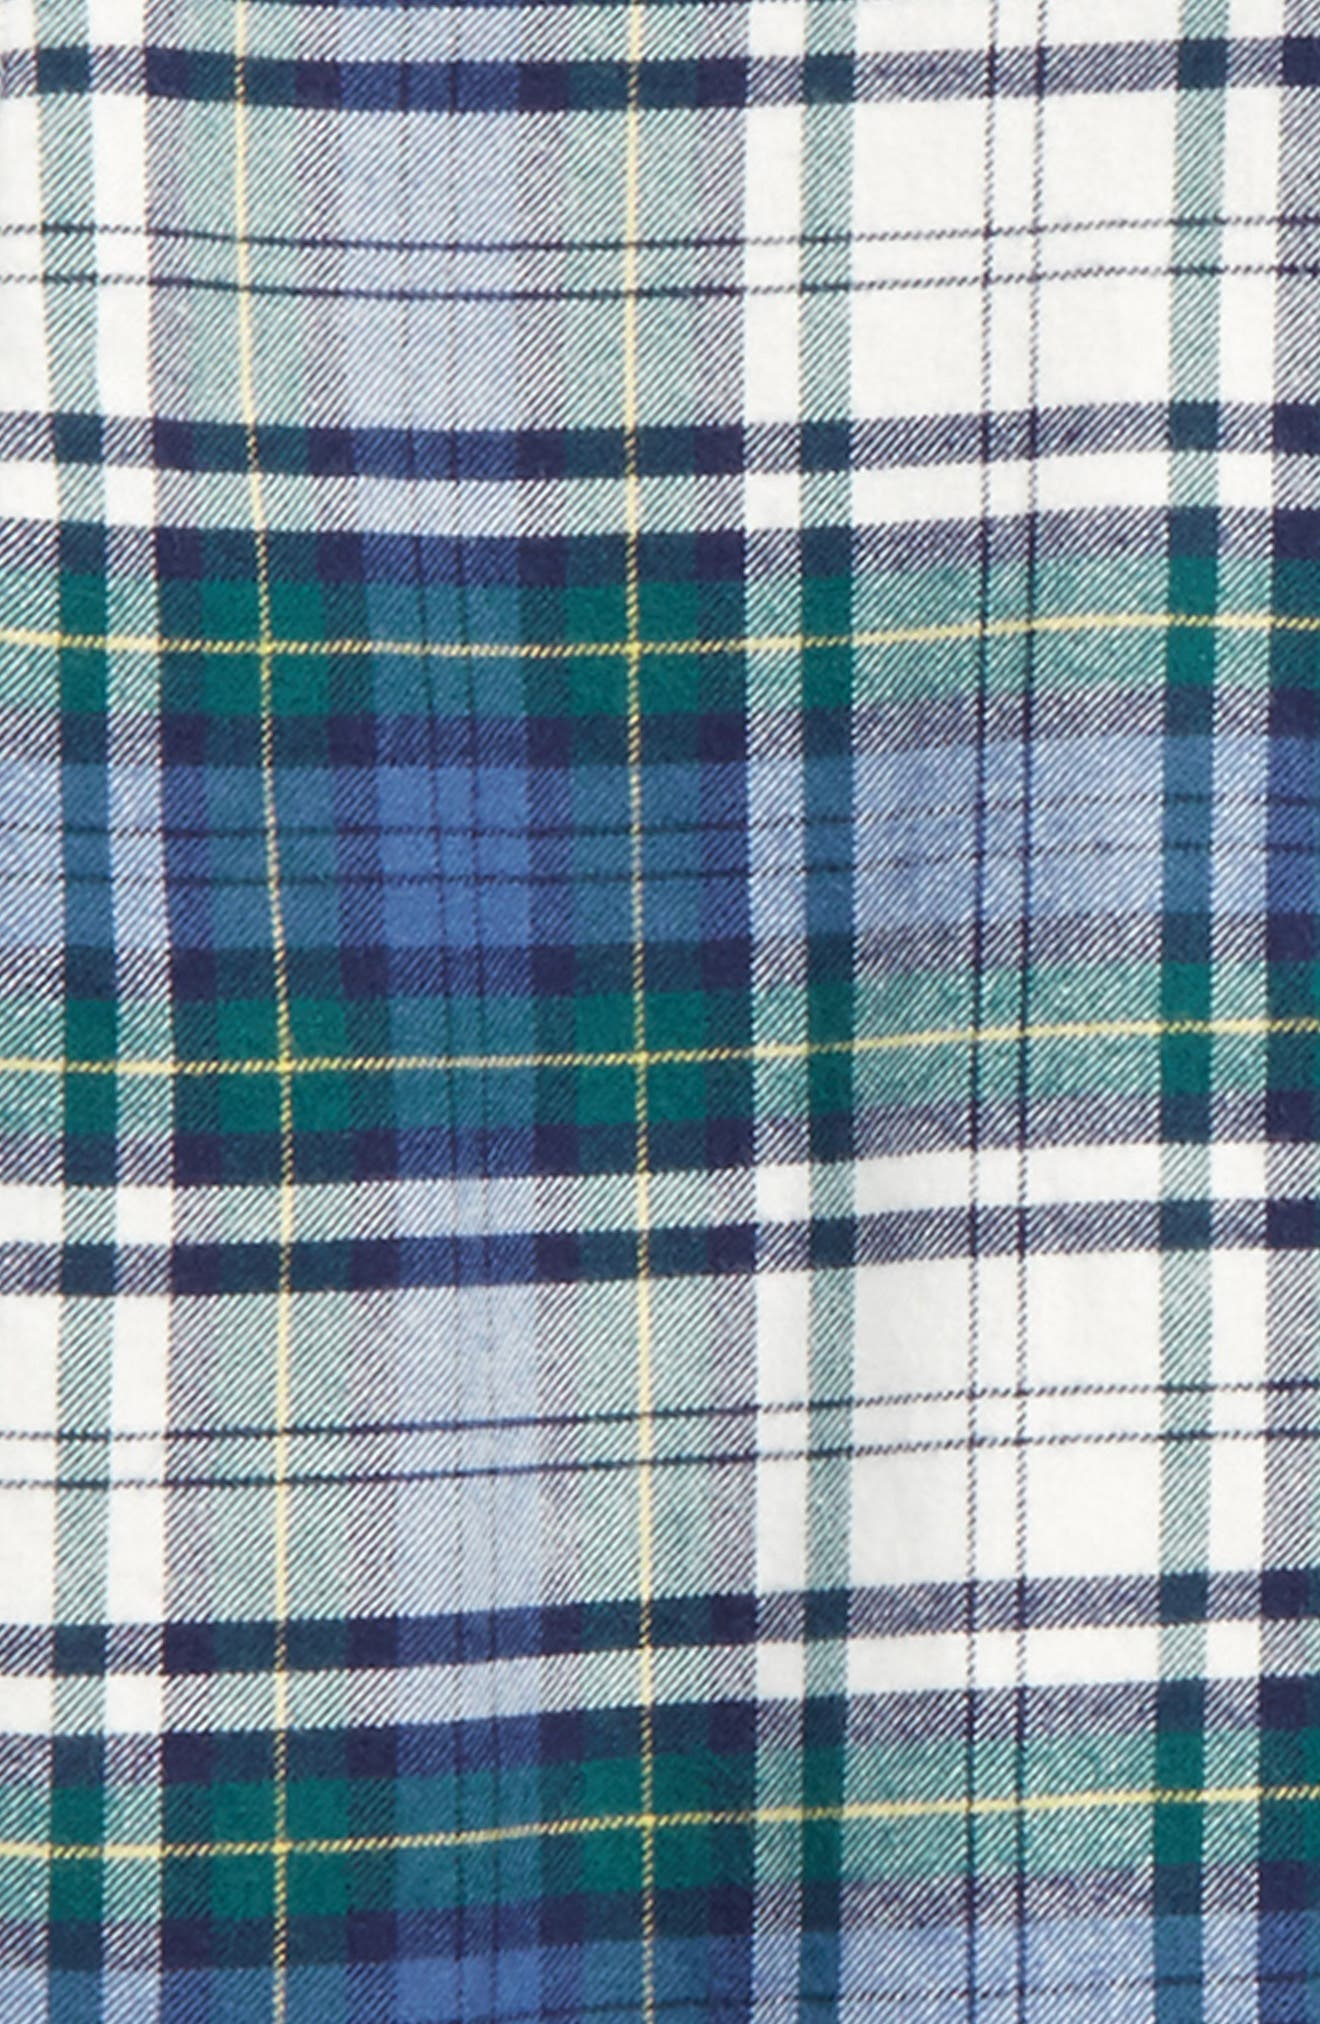 Hayward Point Plaid Flannel Shirt,                             Alternate thumbnail 2, color,                             342